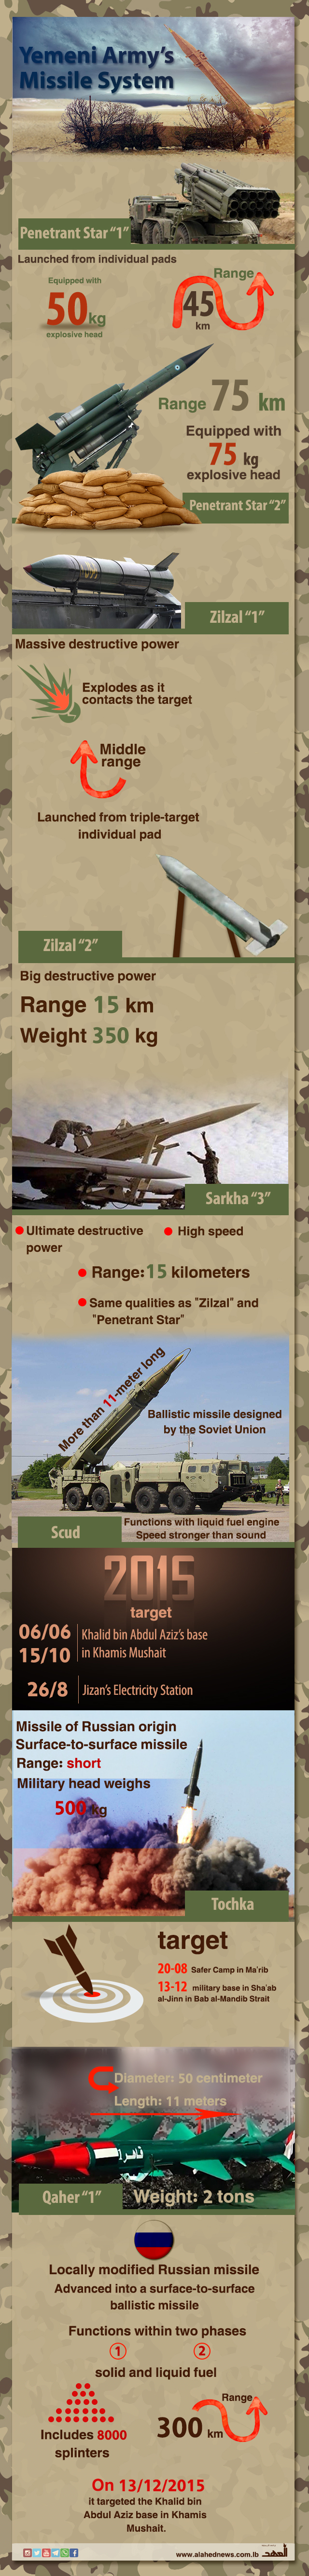 Yemeni Army's Missile System [Infographics]